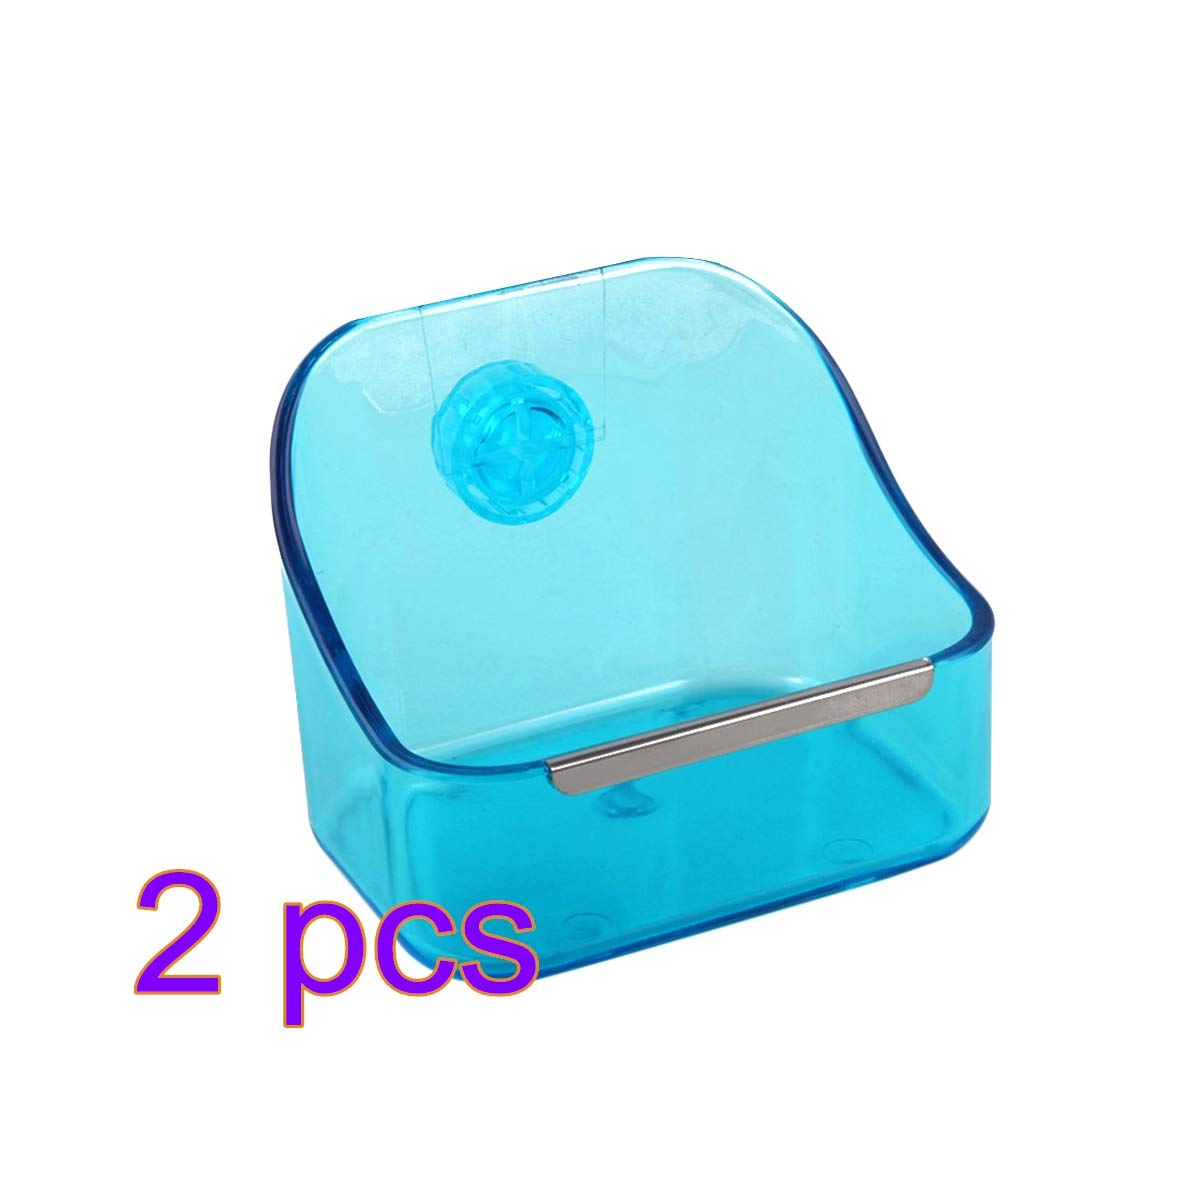 POPETPOP Rabbit Feeders Hanging-Upgraded 2-Pack Food/Water Bowl for Rabbit/Chinchilla/Guinea Pig Hamster Food Bowl Attaches to Cage - Best Bowl to Prevent Knocking Over